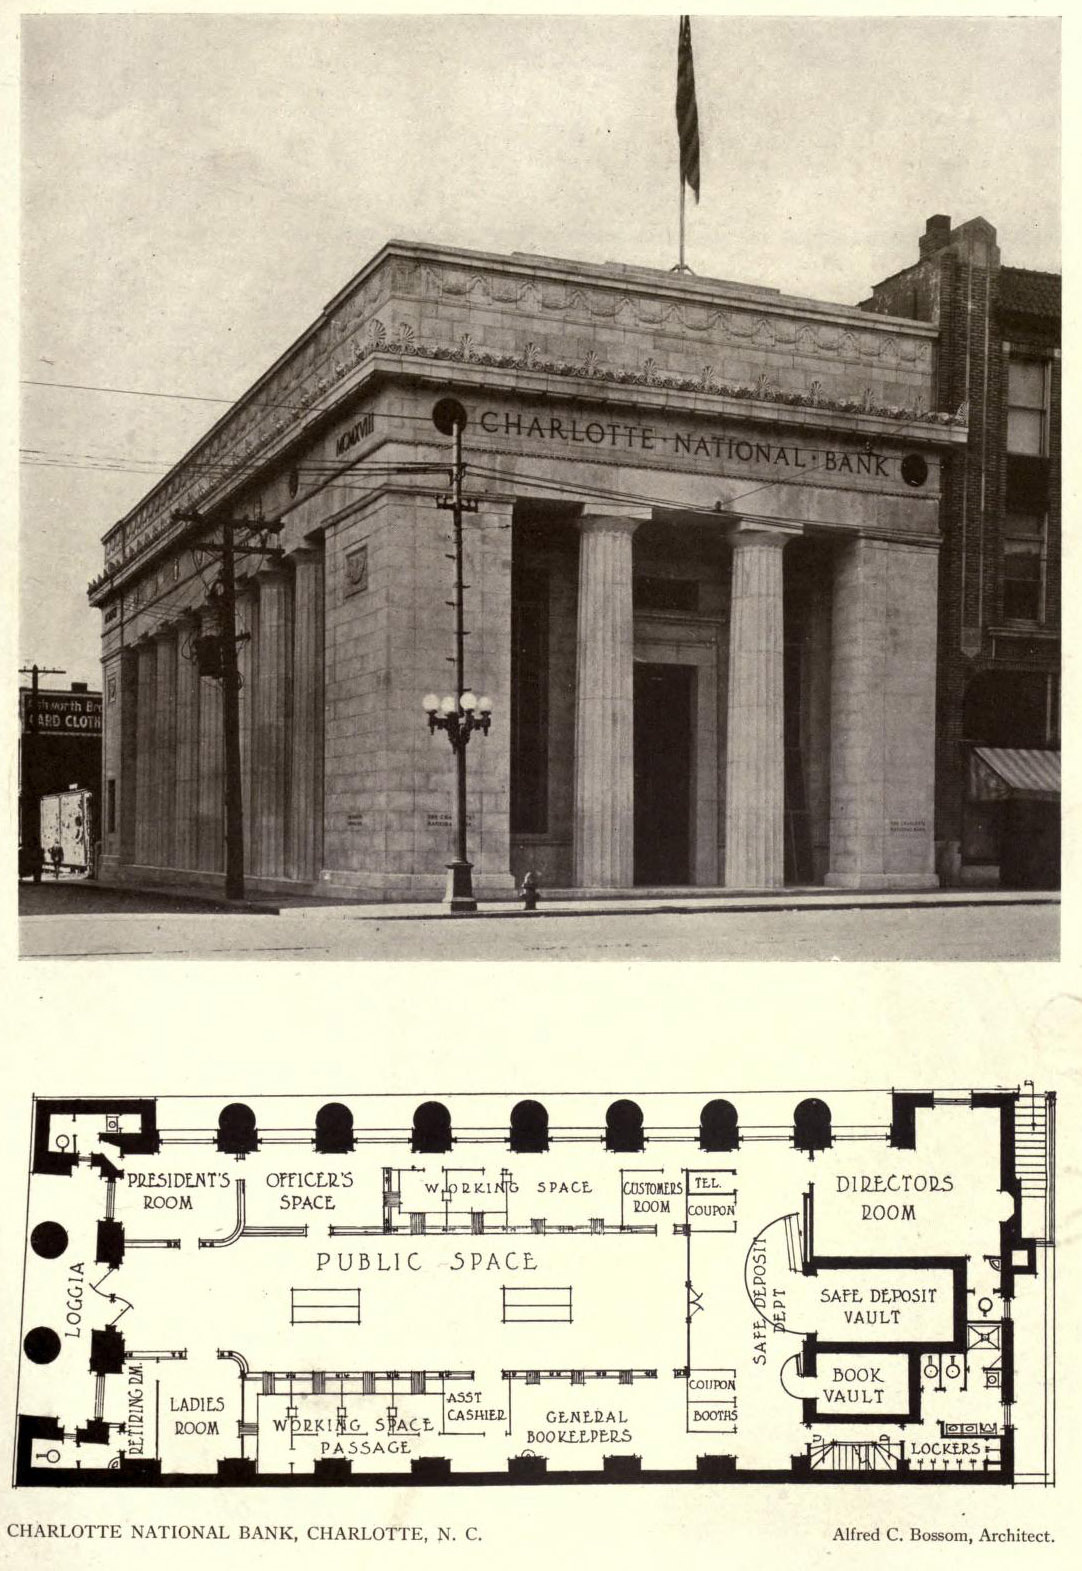 The Charlotte National Bank, Charlotte